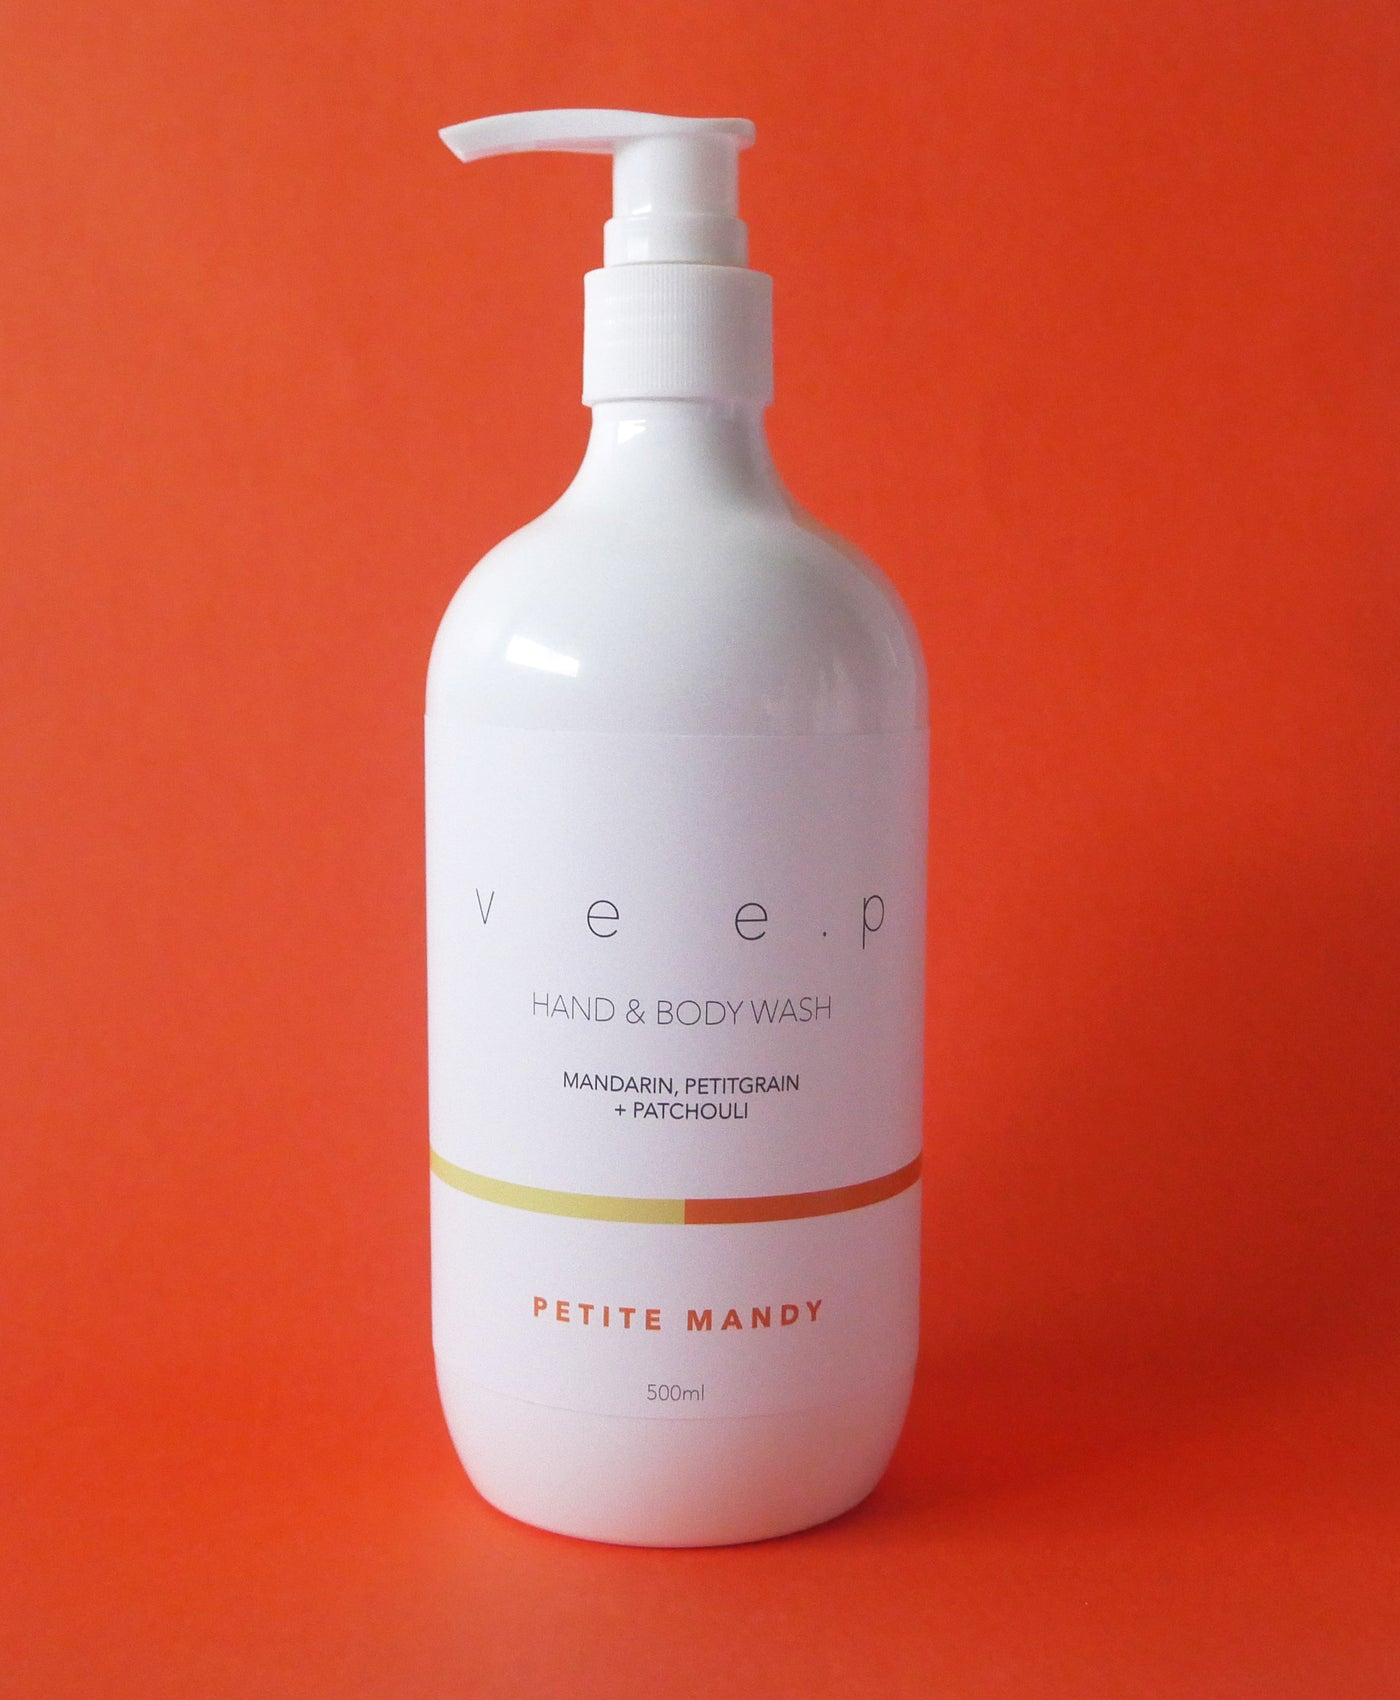 PETITE MANDY BODY WASH - Mandarin, Petit grain & Patchouli